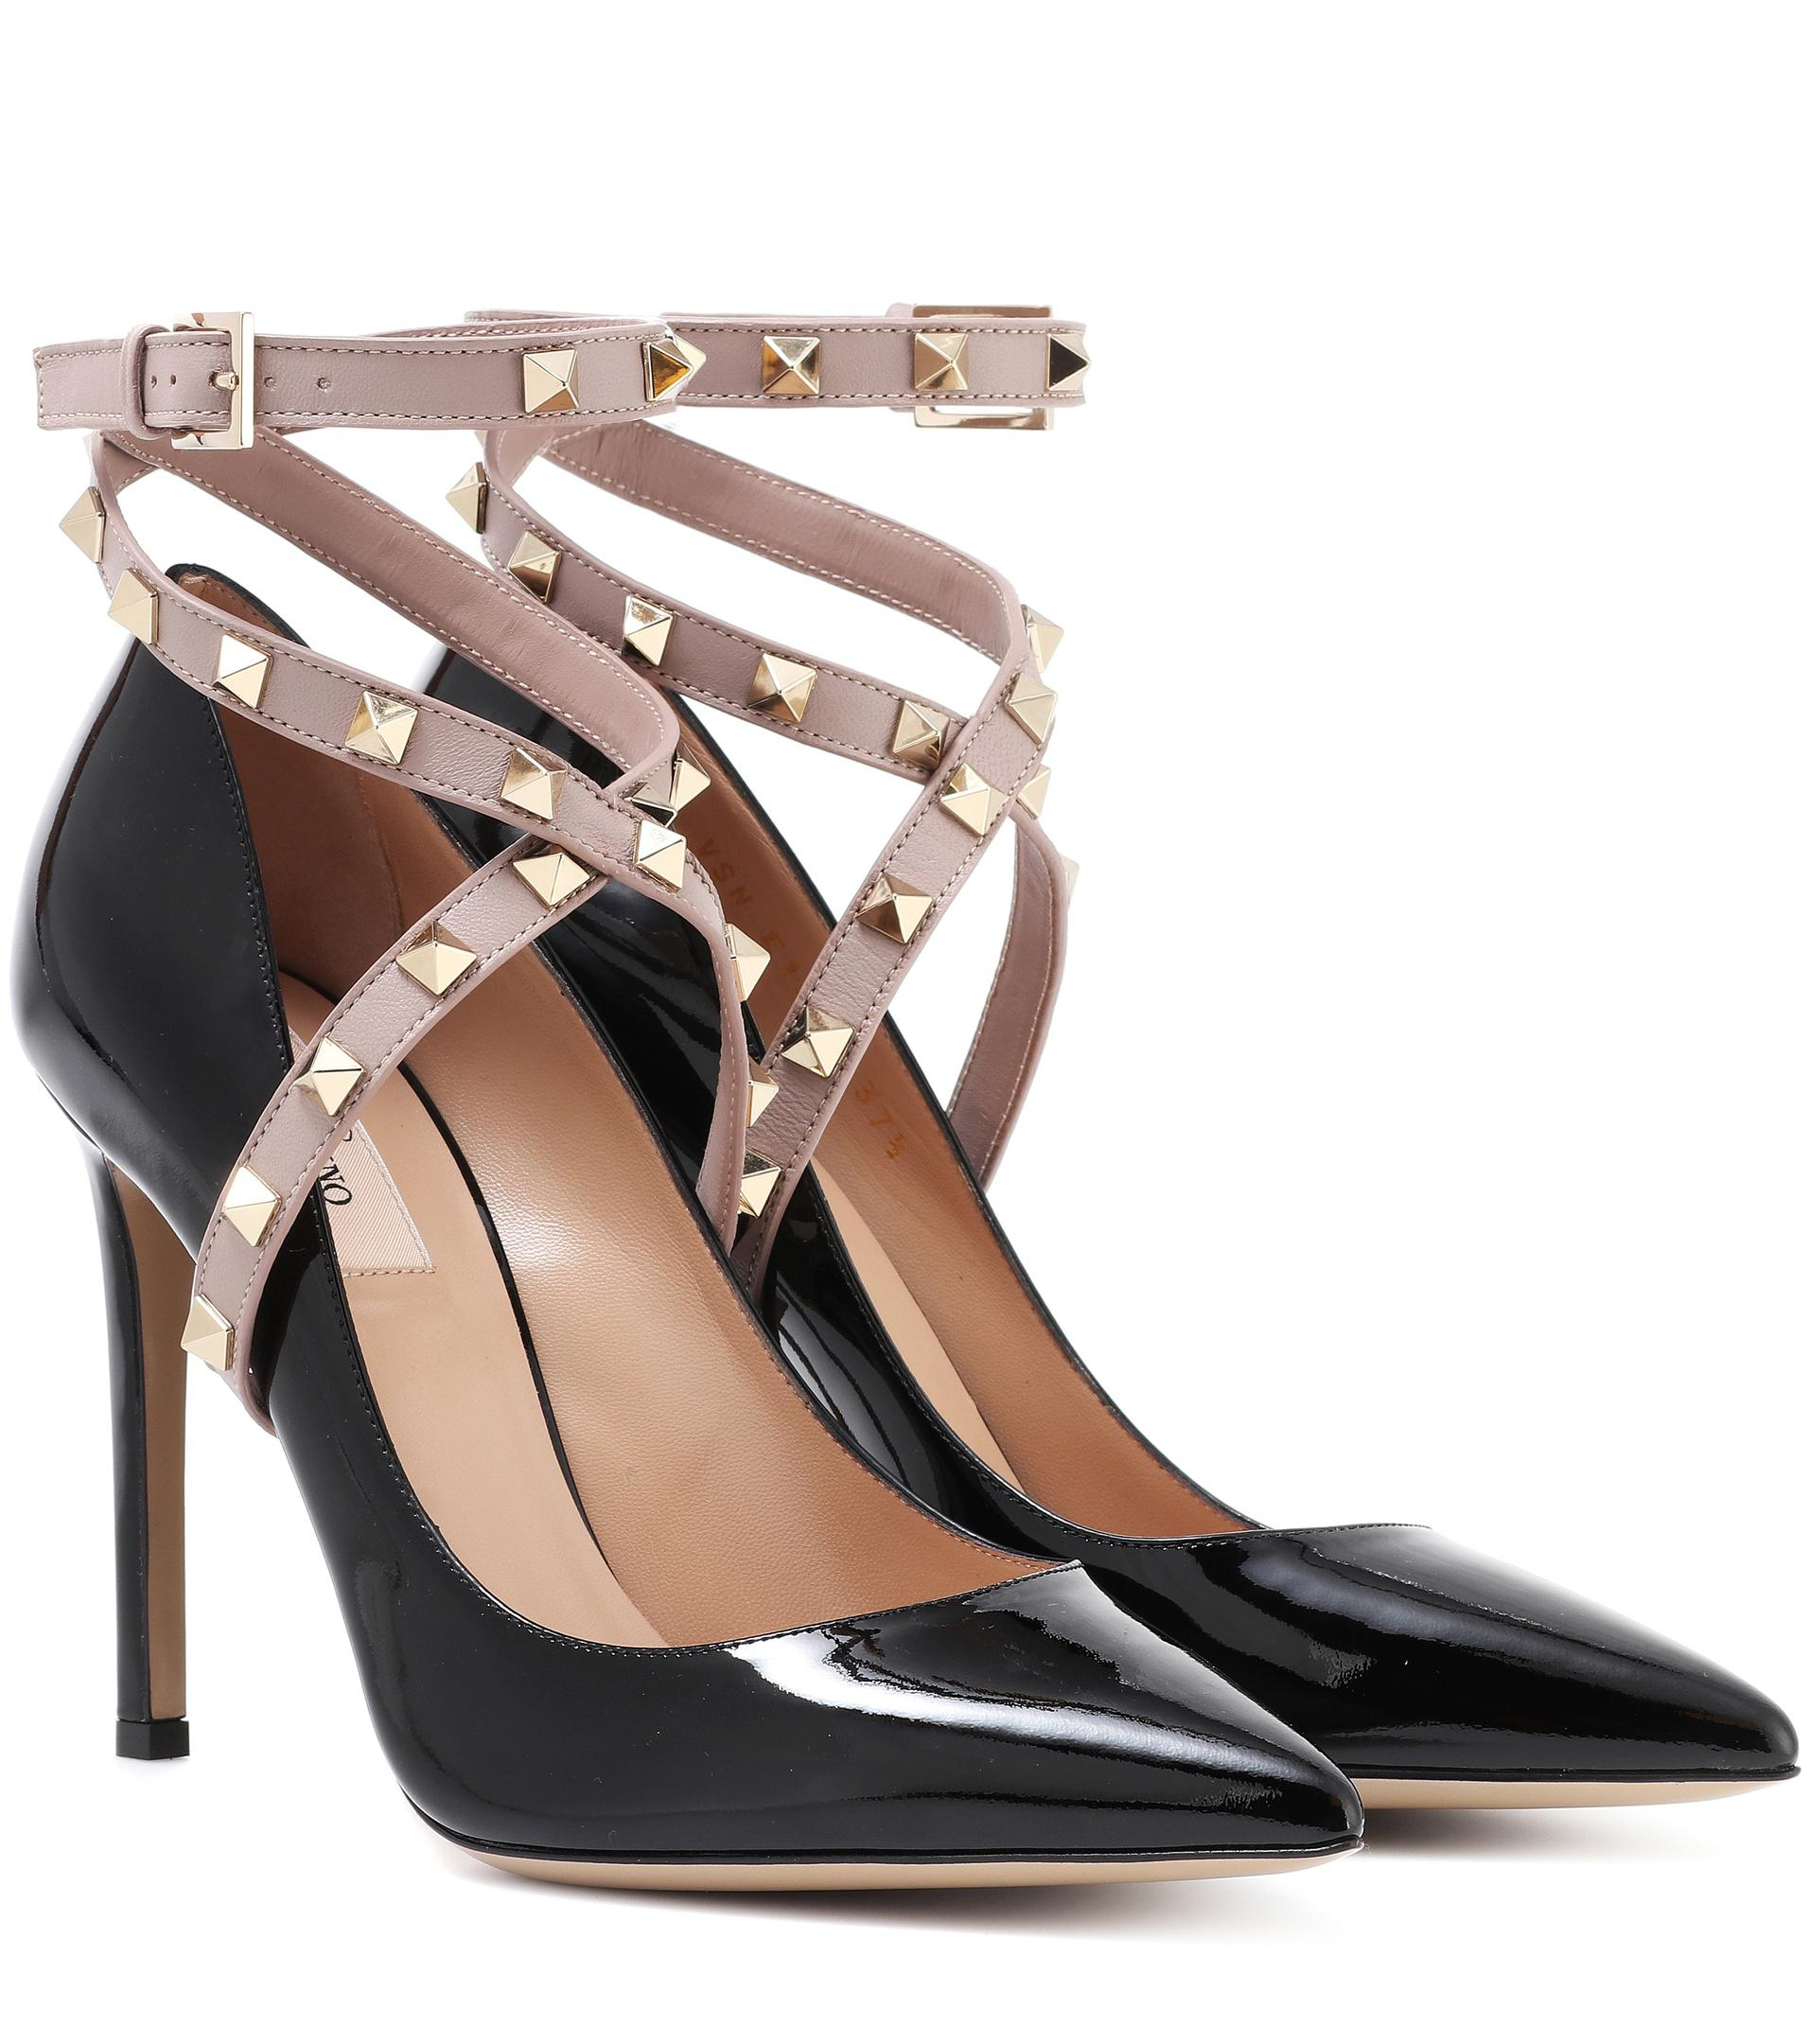 low priced b1d04 5c5e4 valentino-black-Rockstud-Patent-Leather-Pumps.jpeg